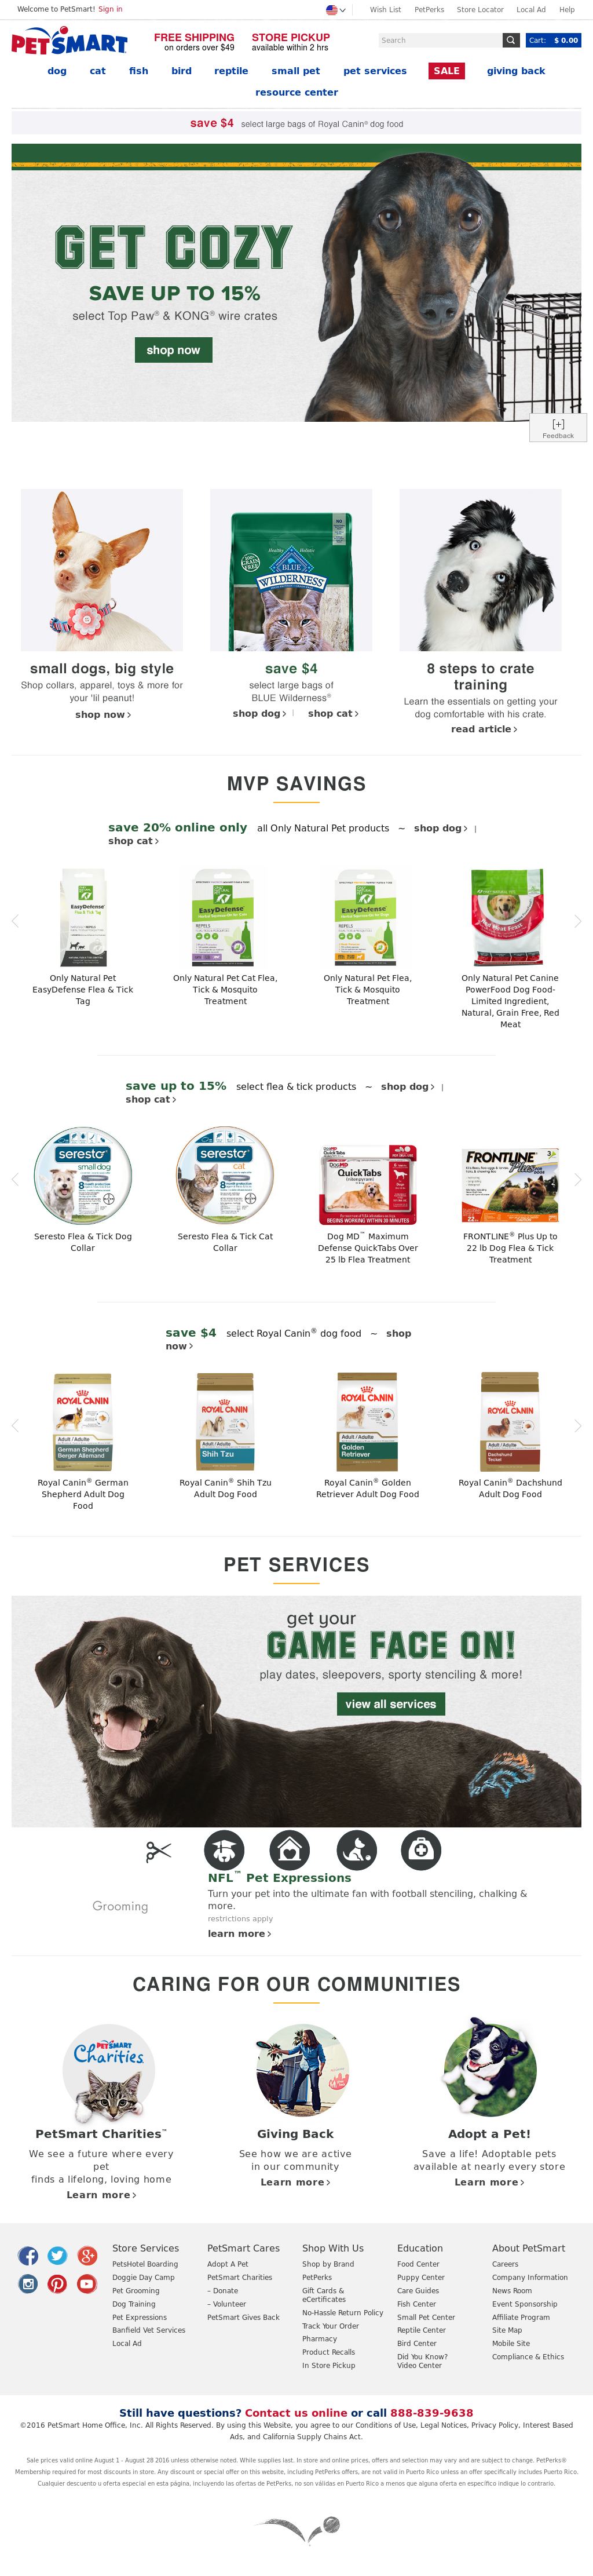 PetSmart Competitors, Revenue and Employees - Owler Company Profile